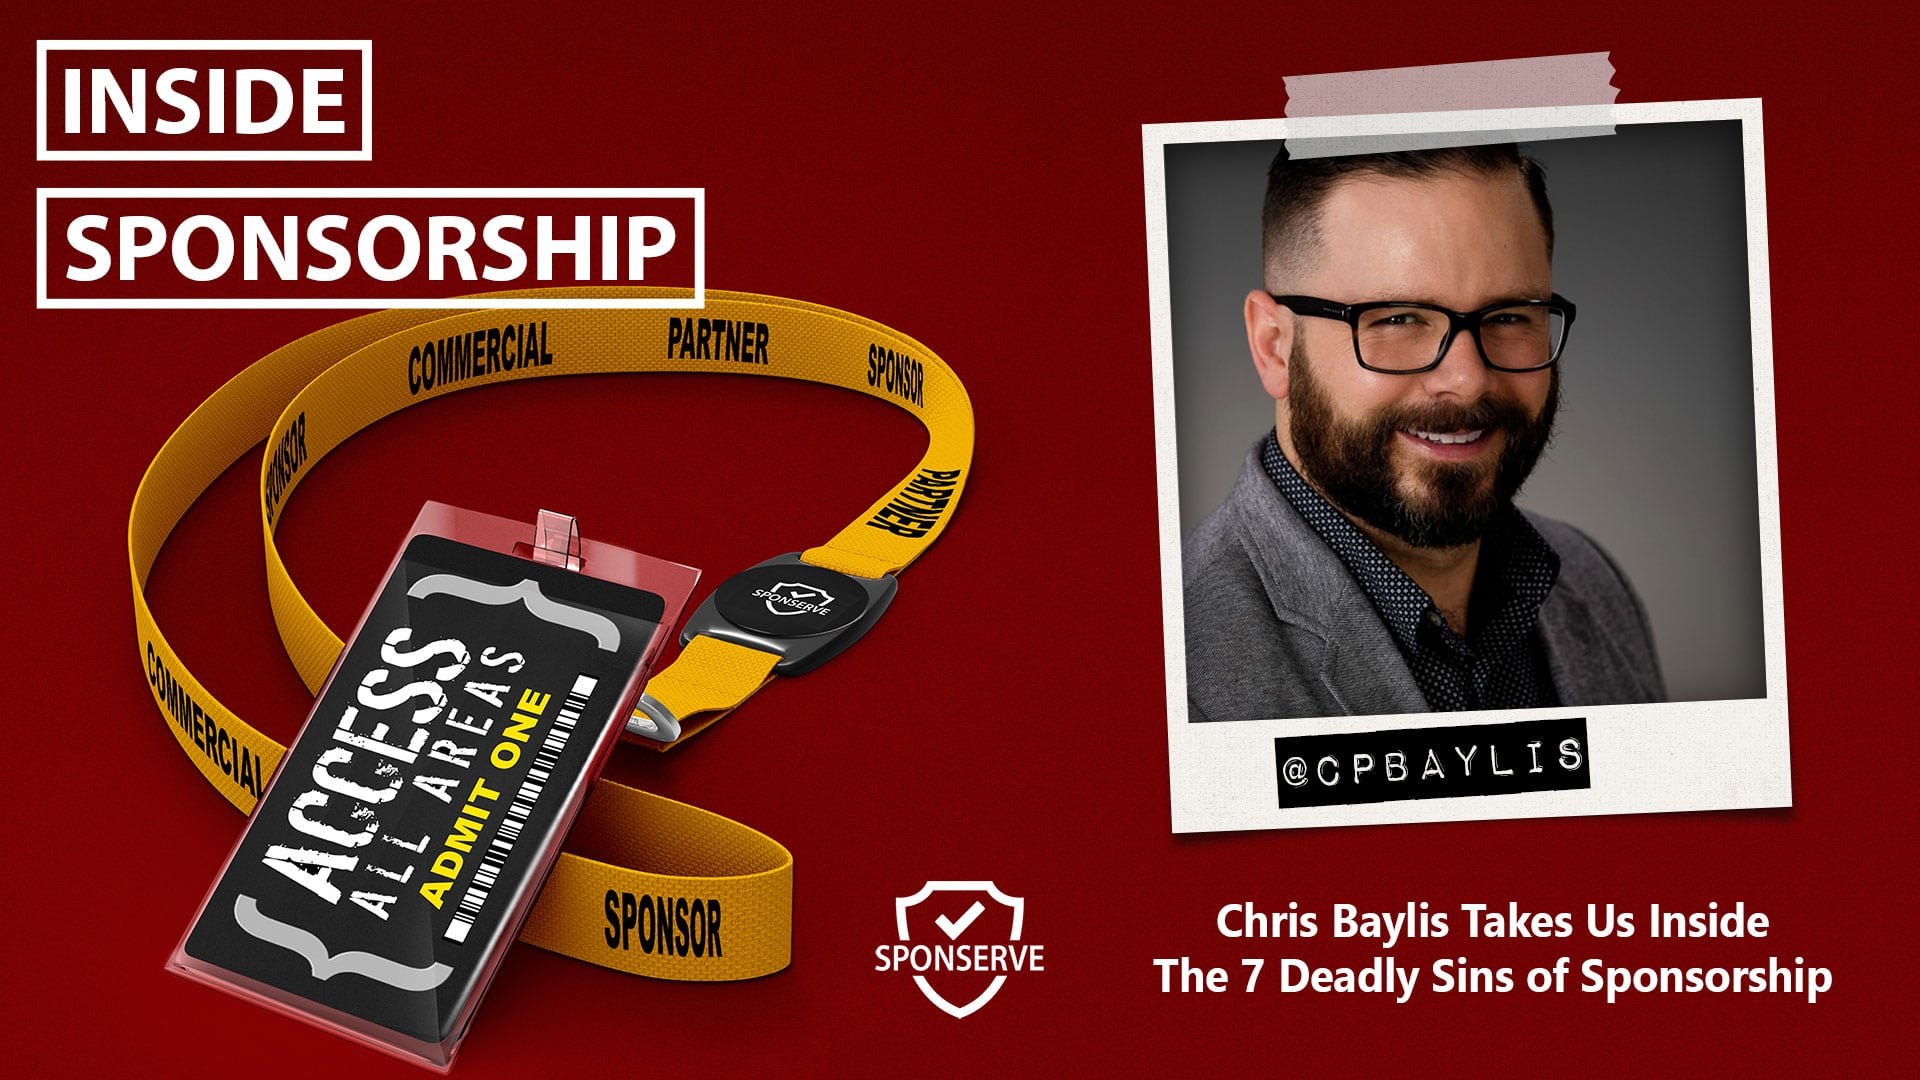 inside-sponsorship-7-deadly-sins-chris-baylis